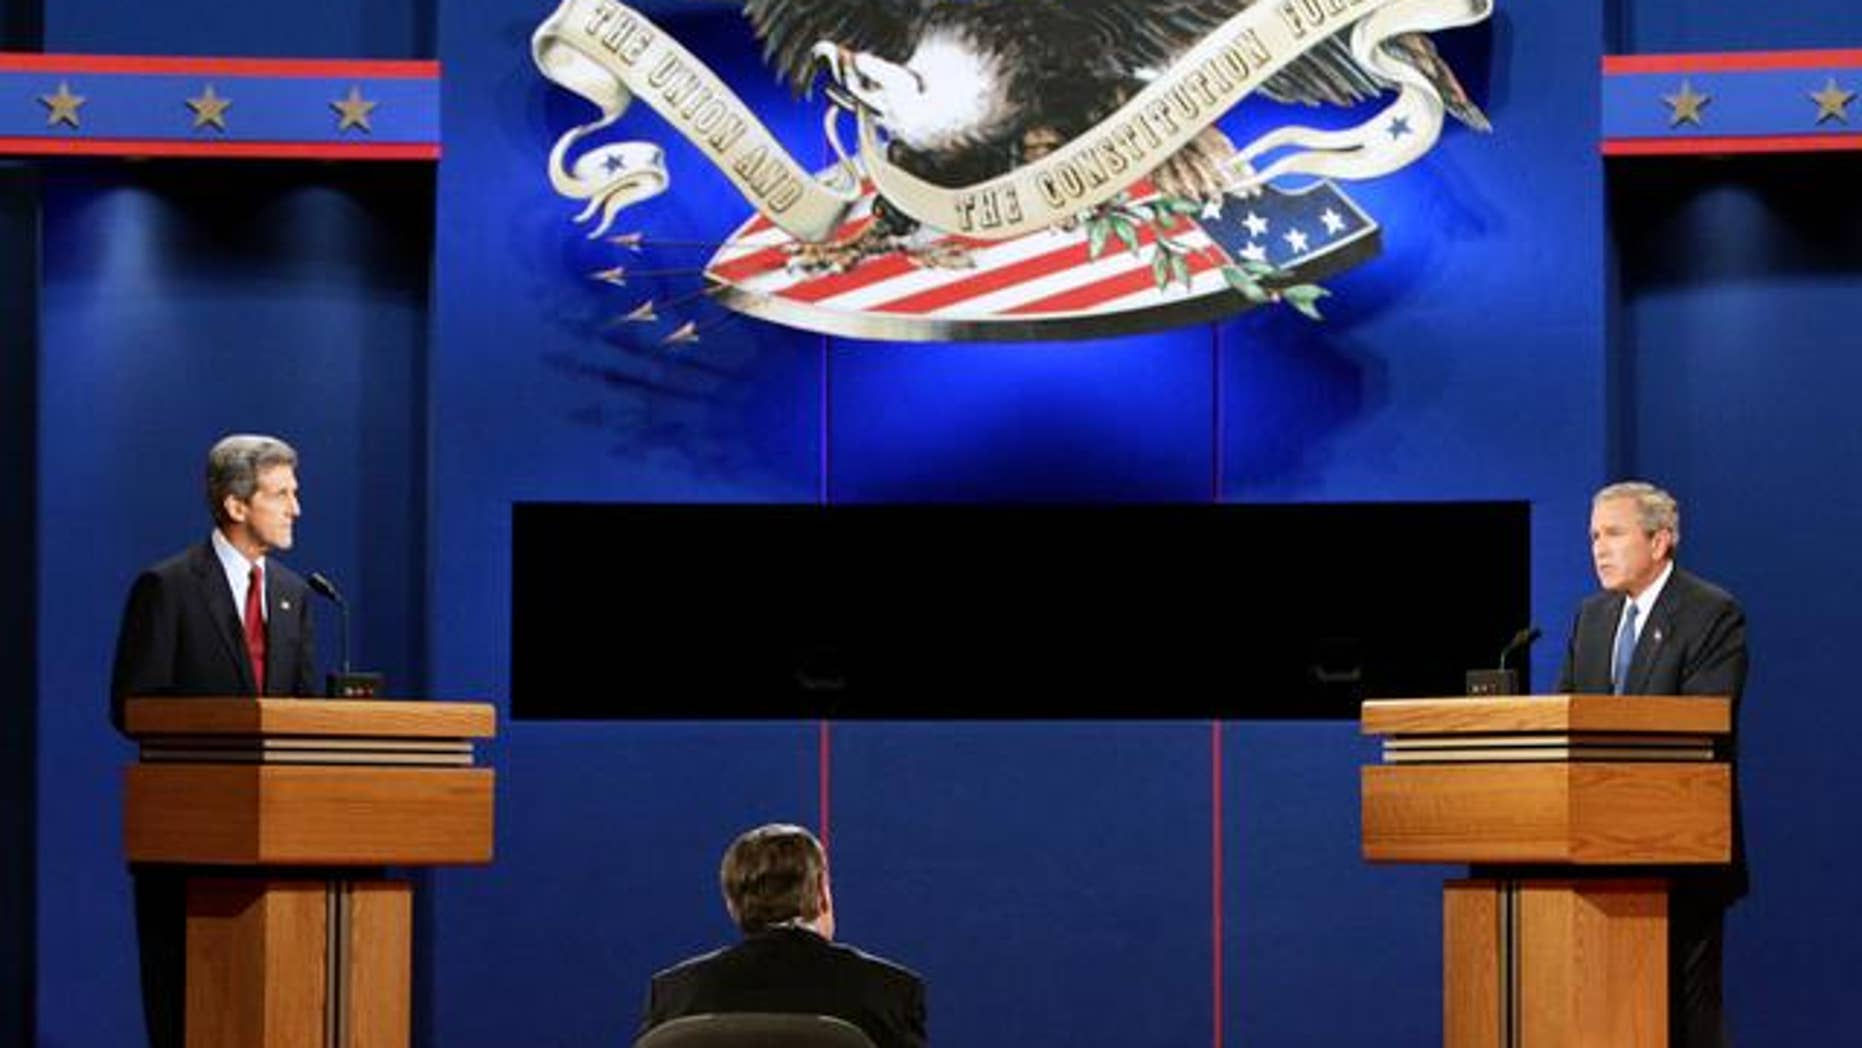 Democratic presidential candidate John Kerry, left,  listens to President Bush during the presidential debate in Coral Gables, Fla., Thursday, Sept. 30 2004. Debate moderator Jim Lehrer is at center.  (AP Photo/Ron Edmonds)